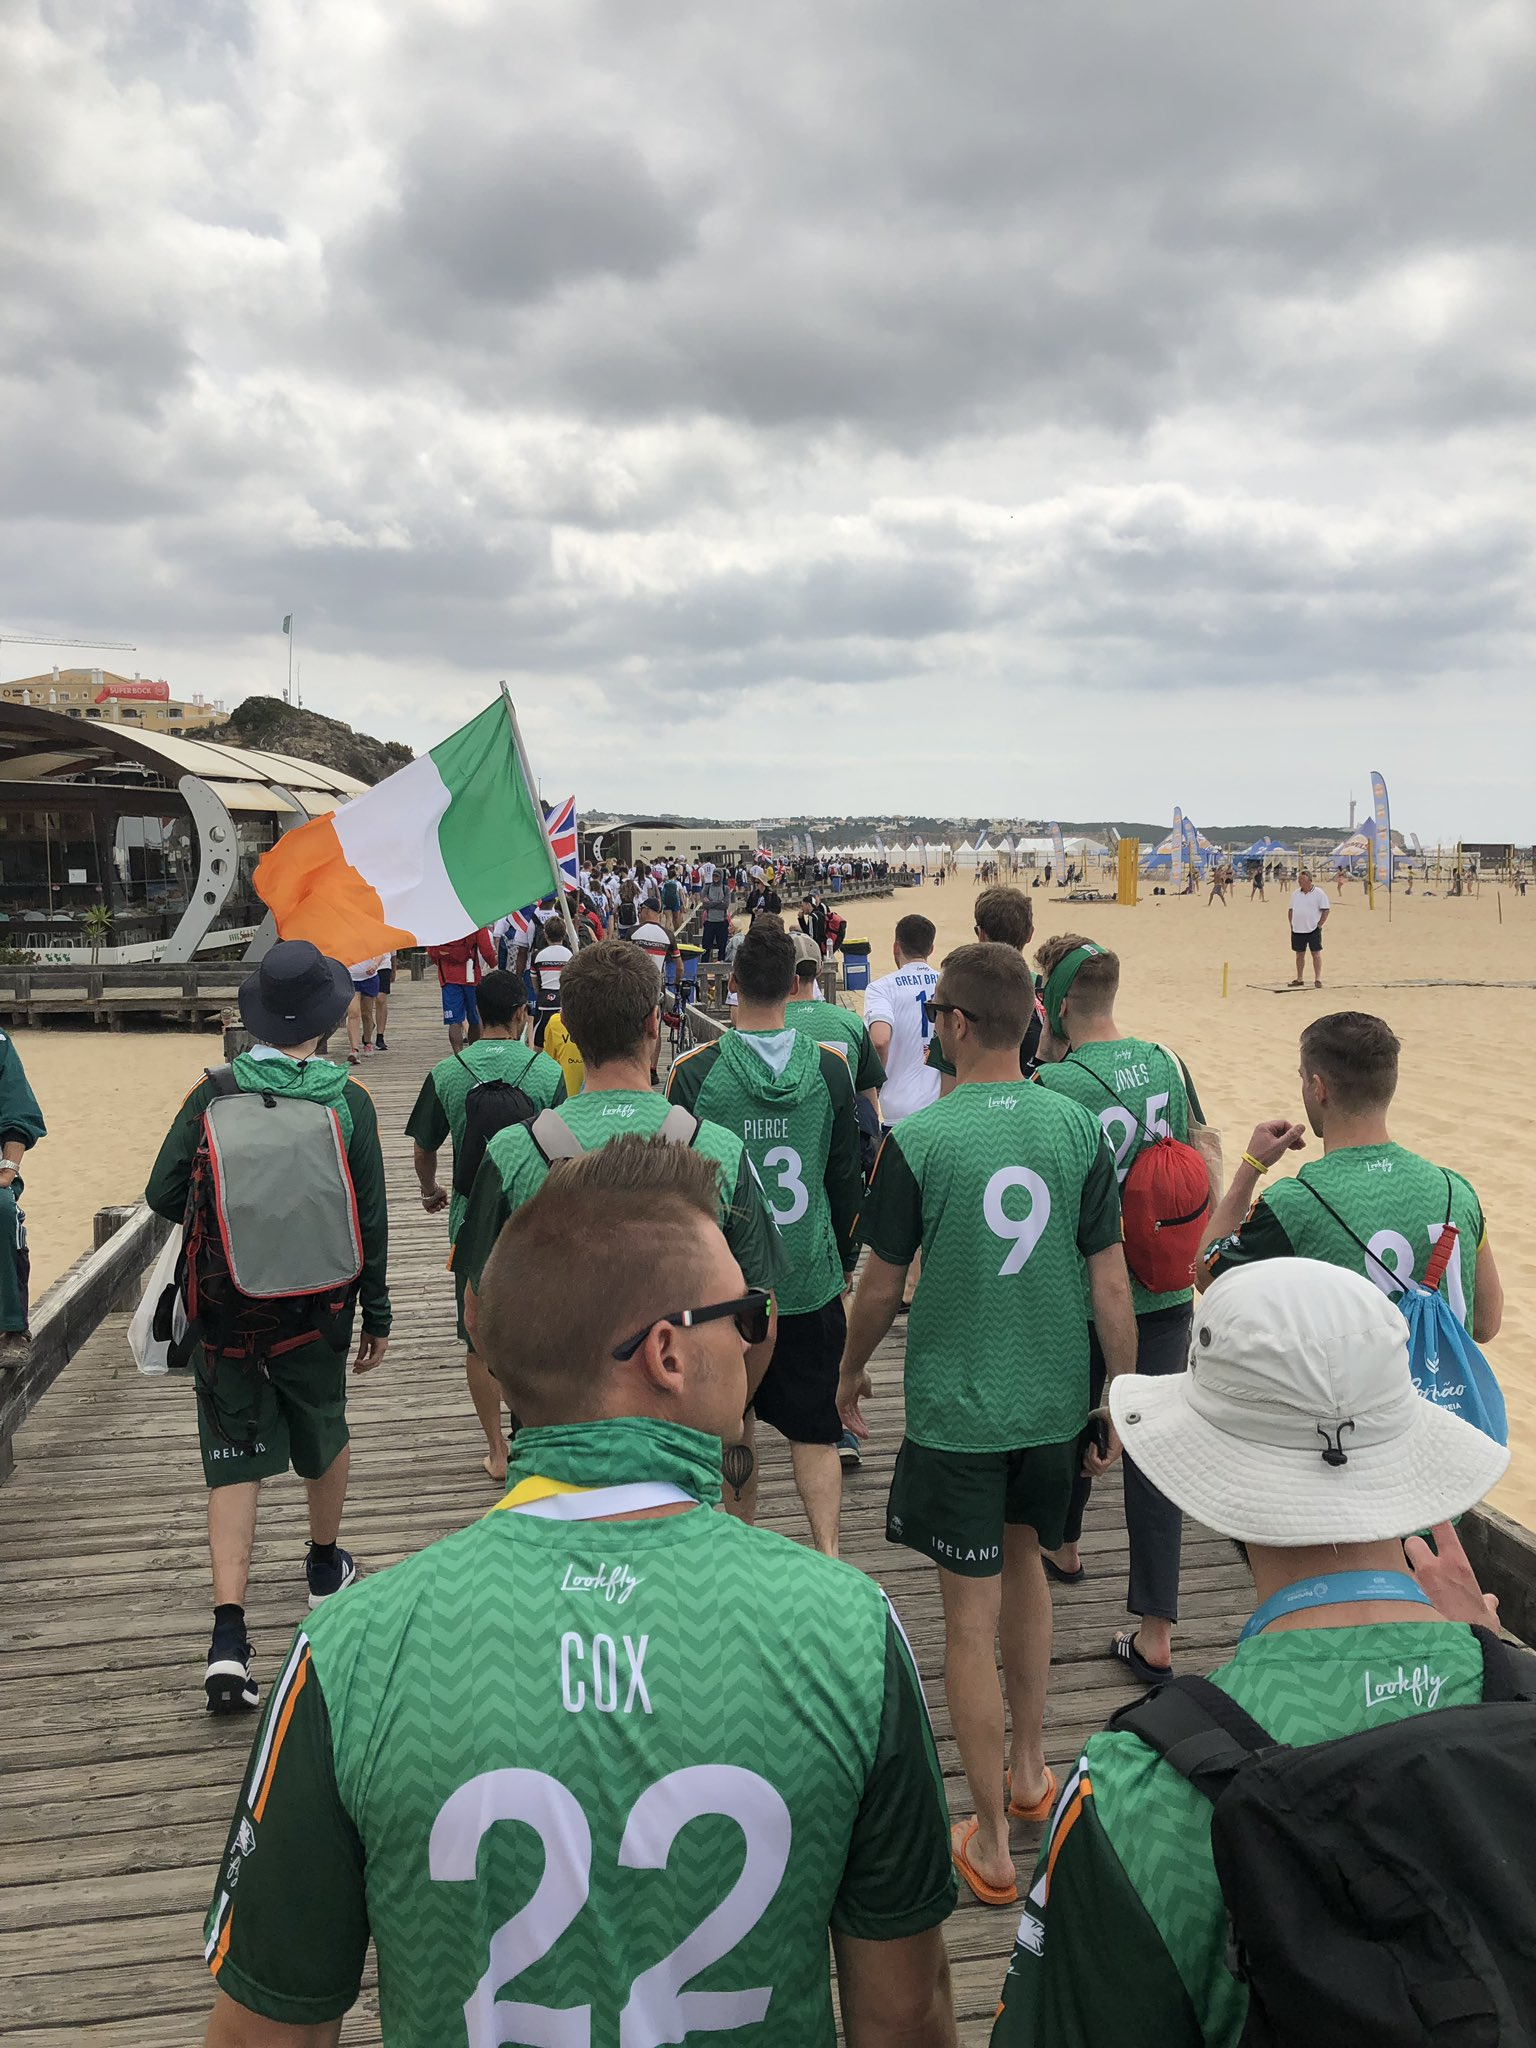 The Opening Ceremony is go! @EBUC2019 @IFDAnews @WorldFlyingDisc #EBUC2019 https://t.co/MvS54EfbPK <a href='https://twitter.com/IRLMastersBeach/status/1125362466354077698/photo/1' target='_blank'>See original &raquo;</a>